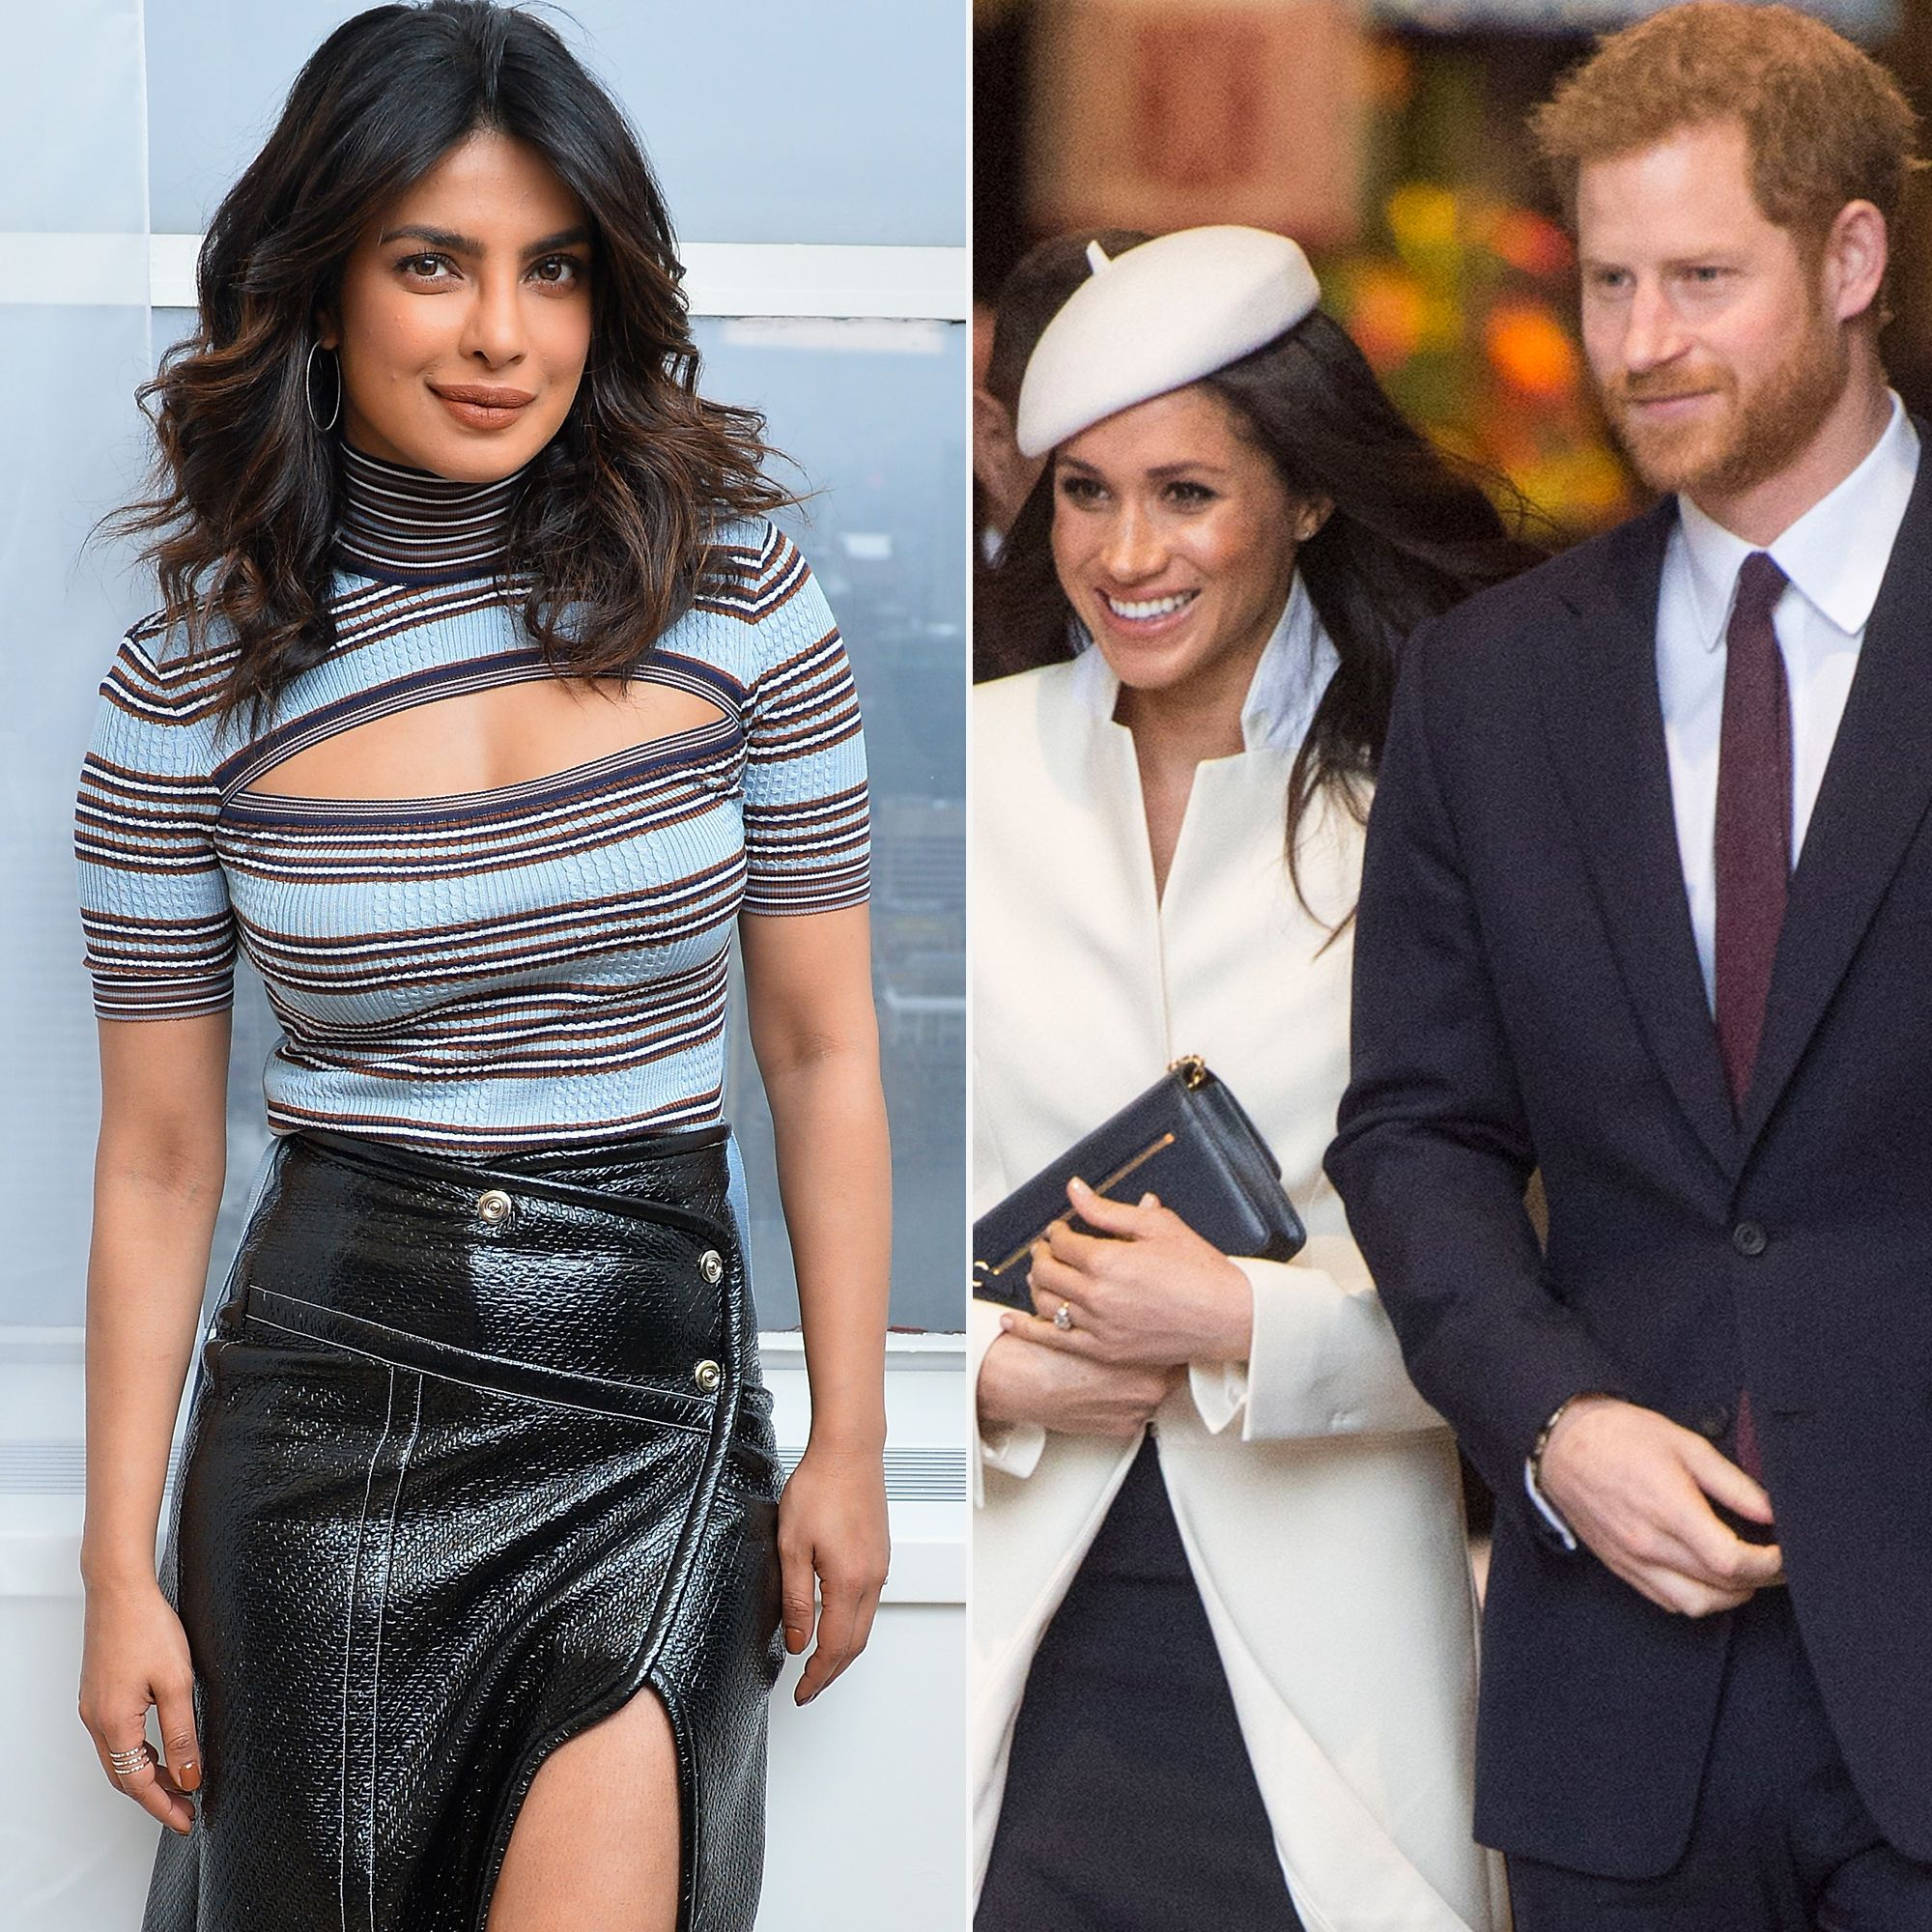 Flipboard: Priyanka Chopra Gives Meghan Markle's Royal